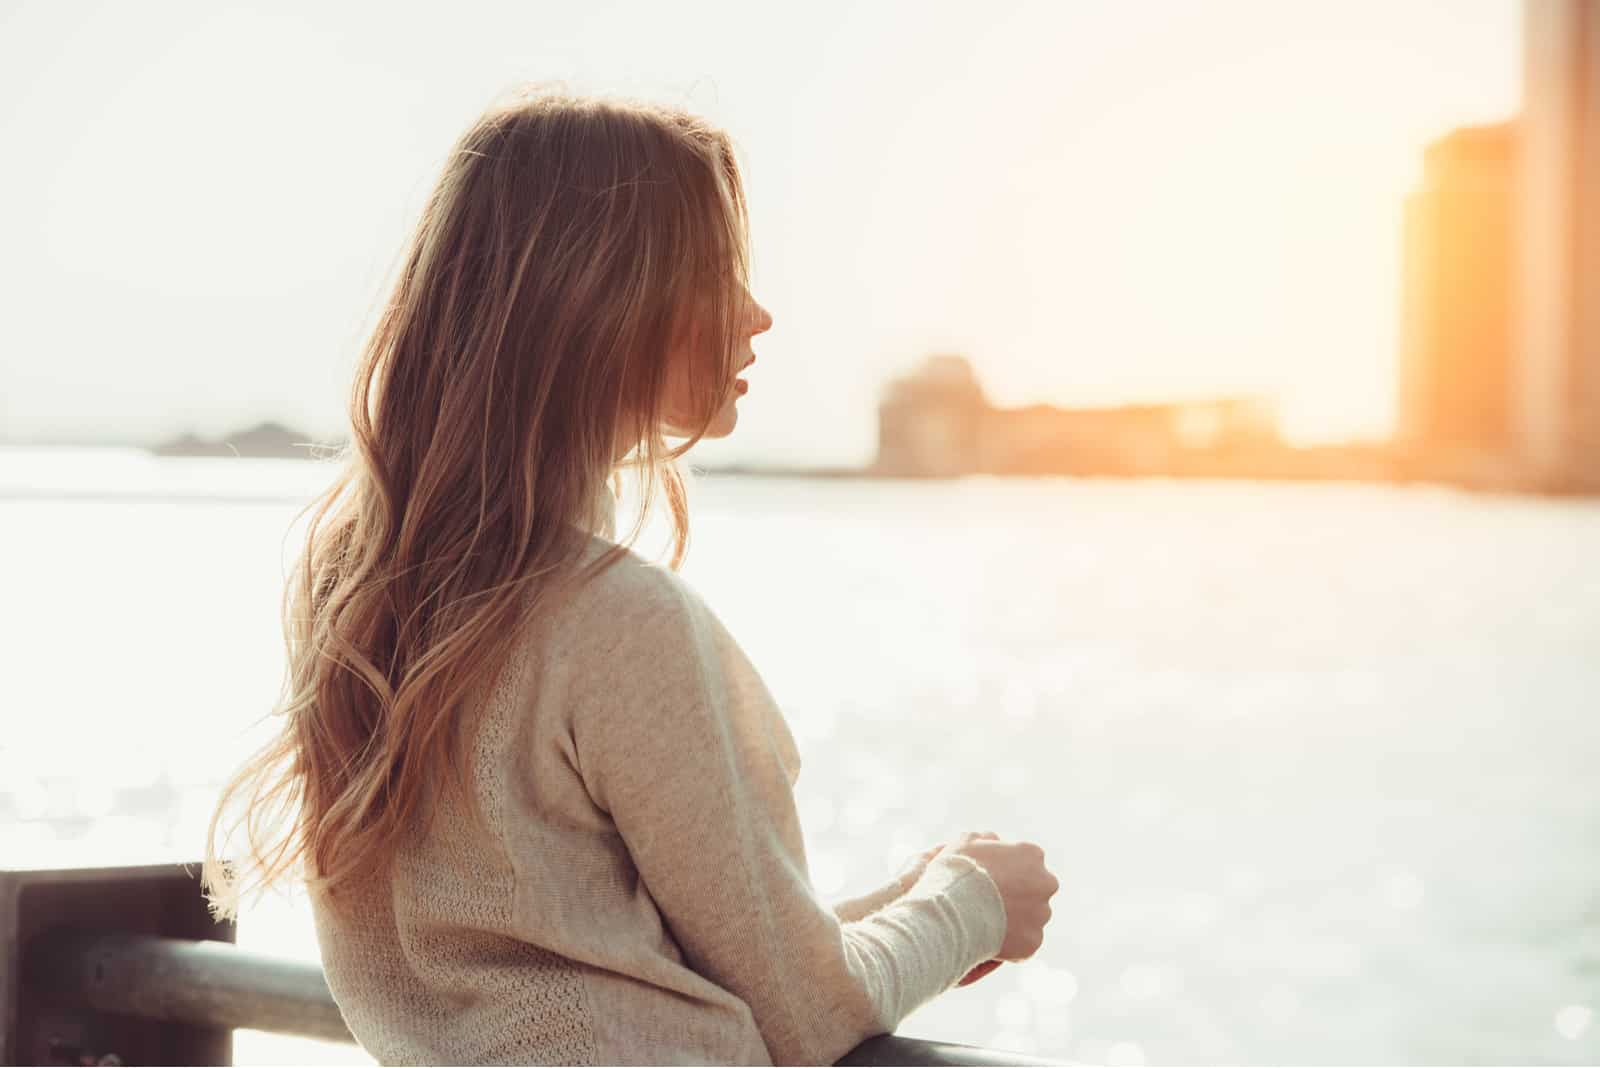 a woman with long brown hair stands leaning against a fence and looks out to sea